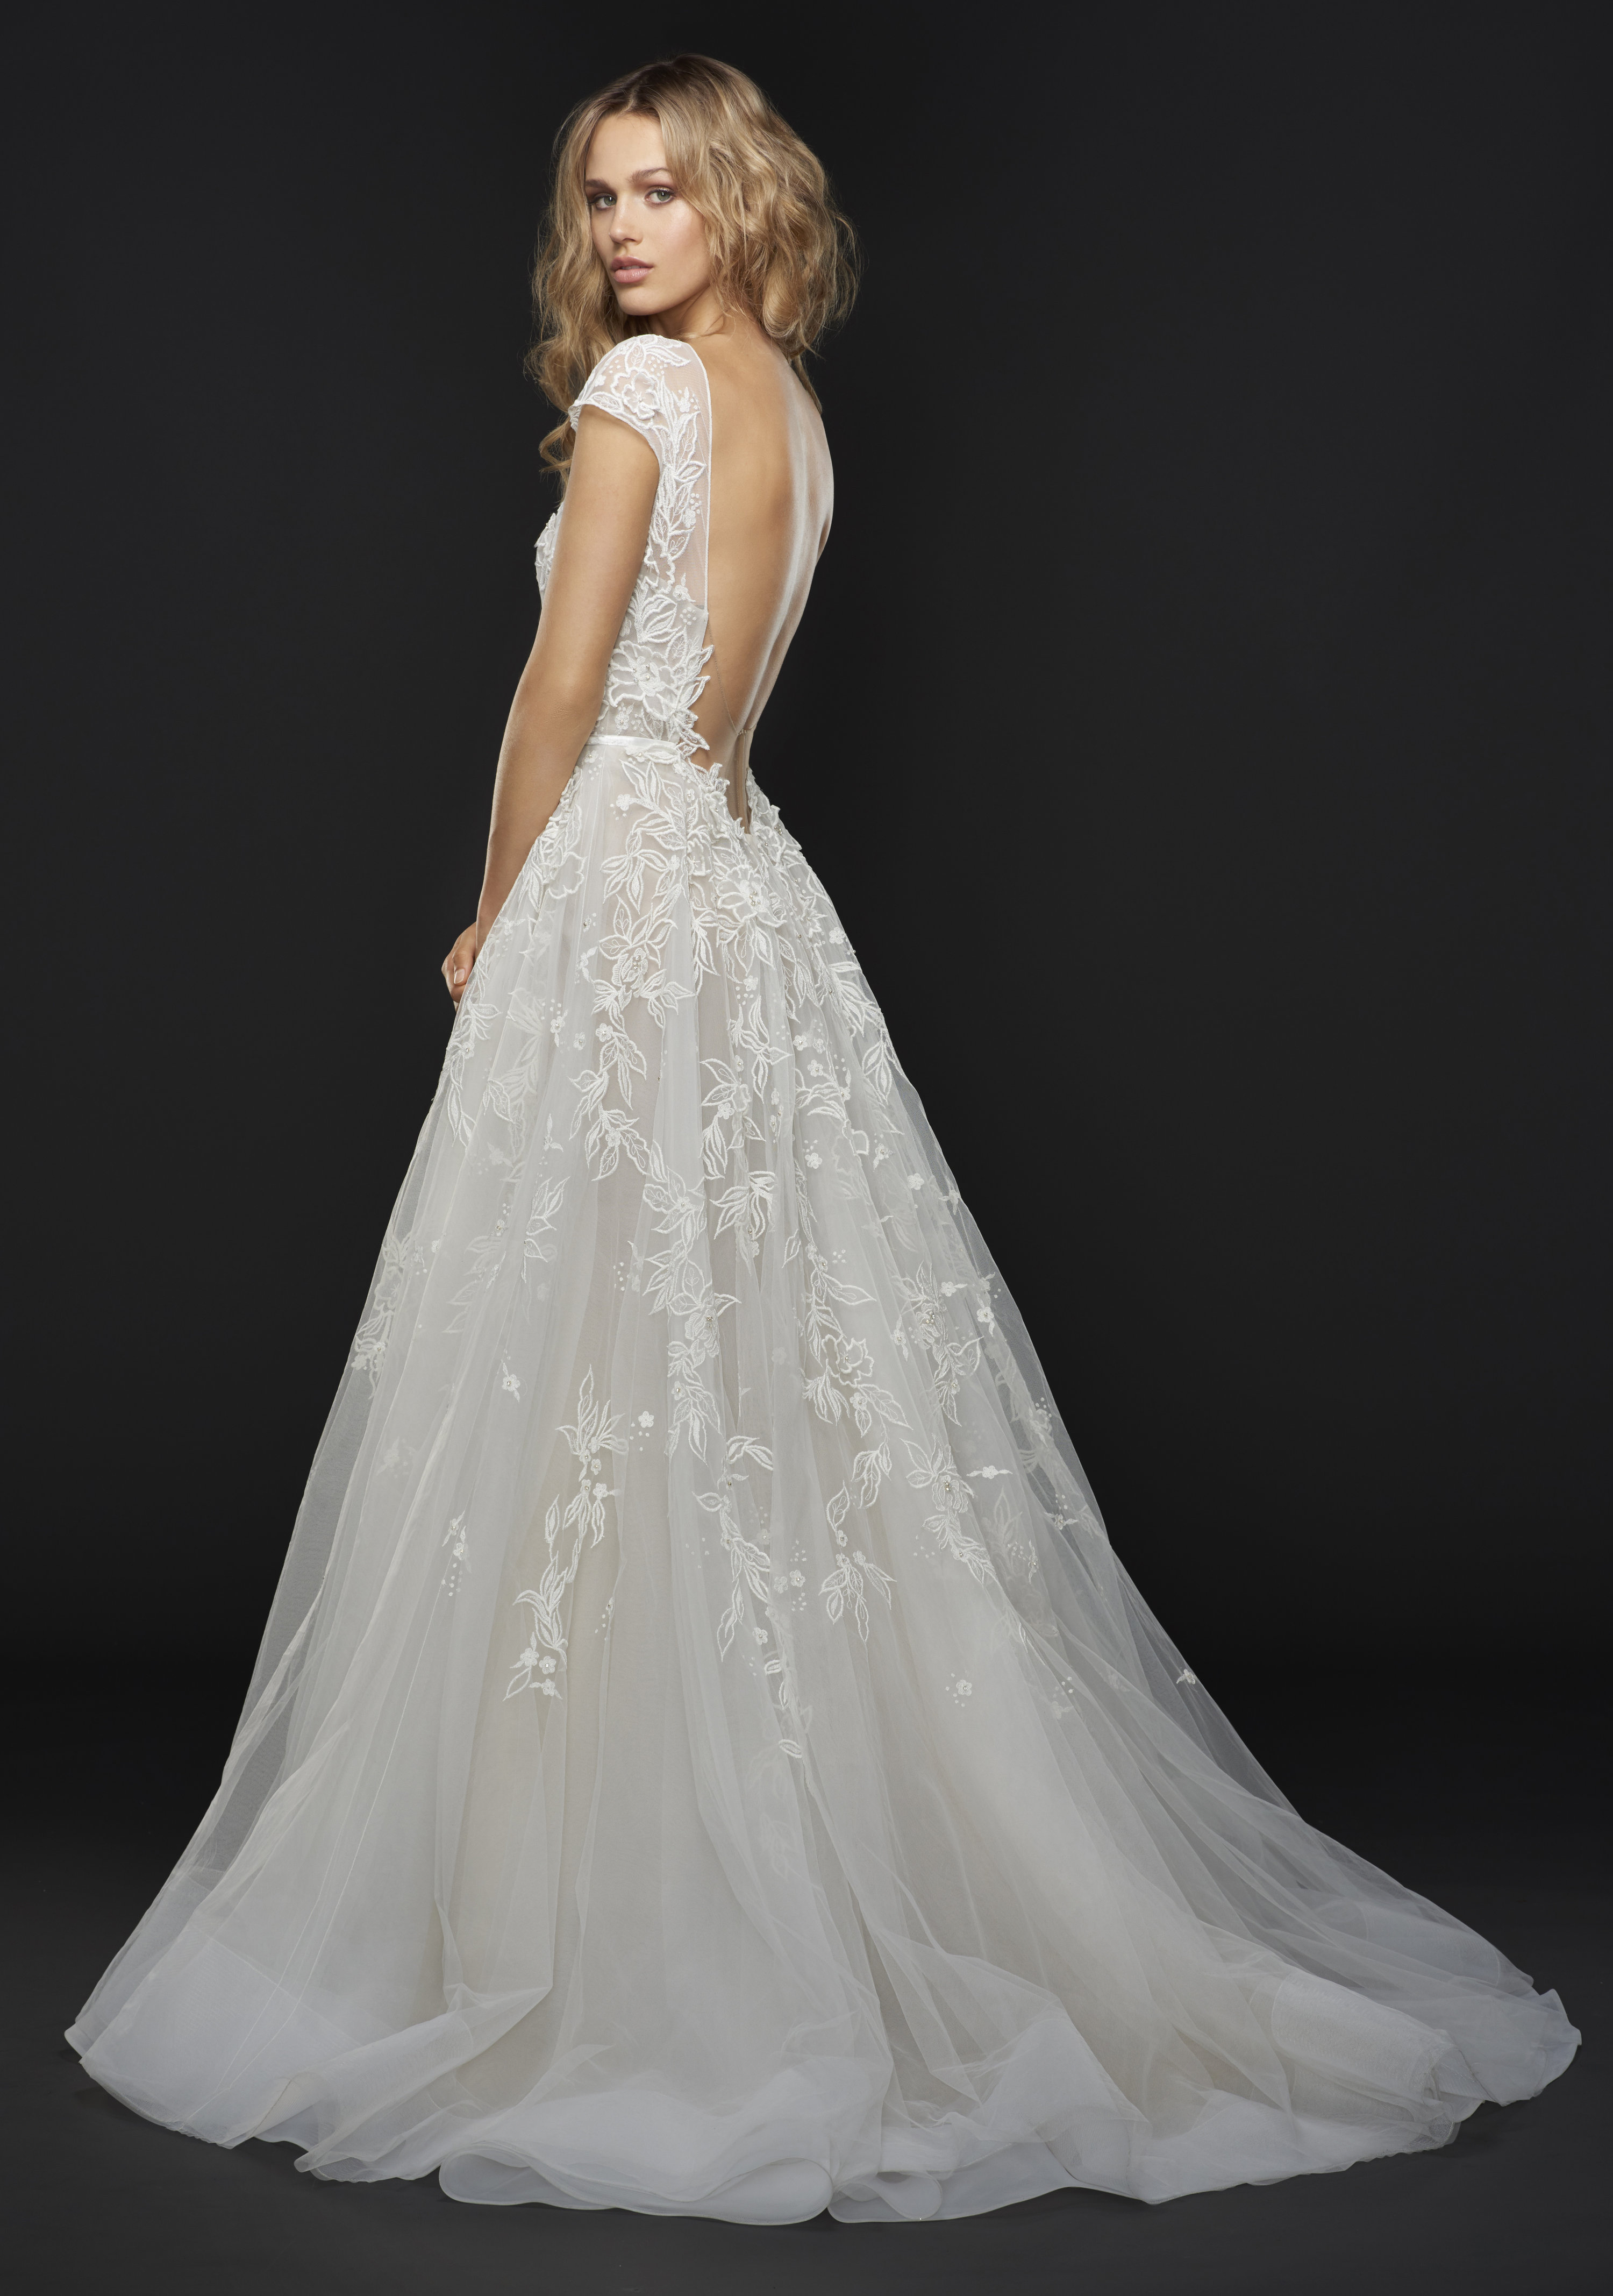 Bridal Gowns and Wedding Dresses by JLM Couture - Style 6757 Vaughn